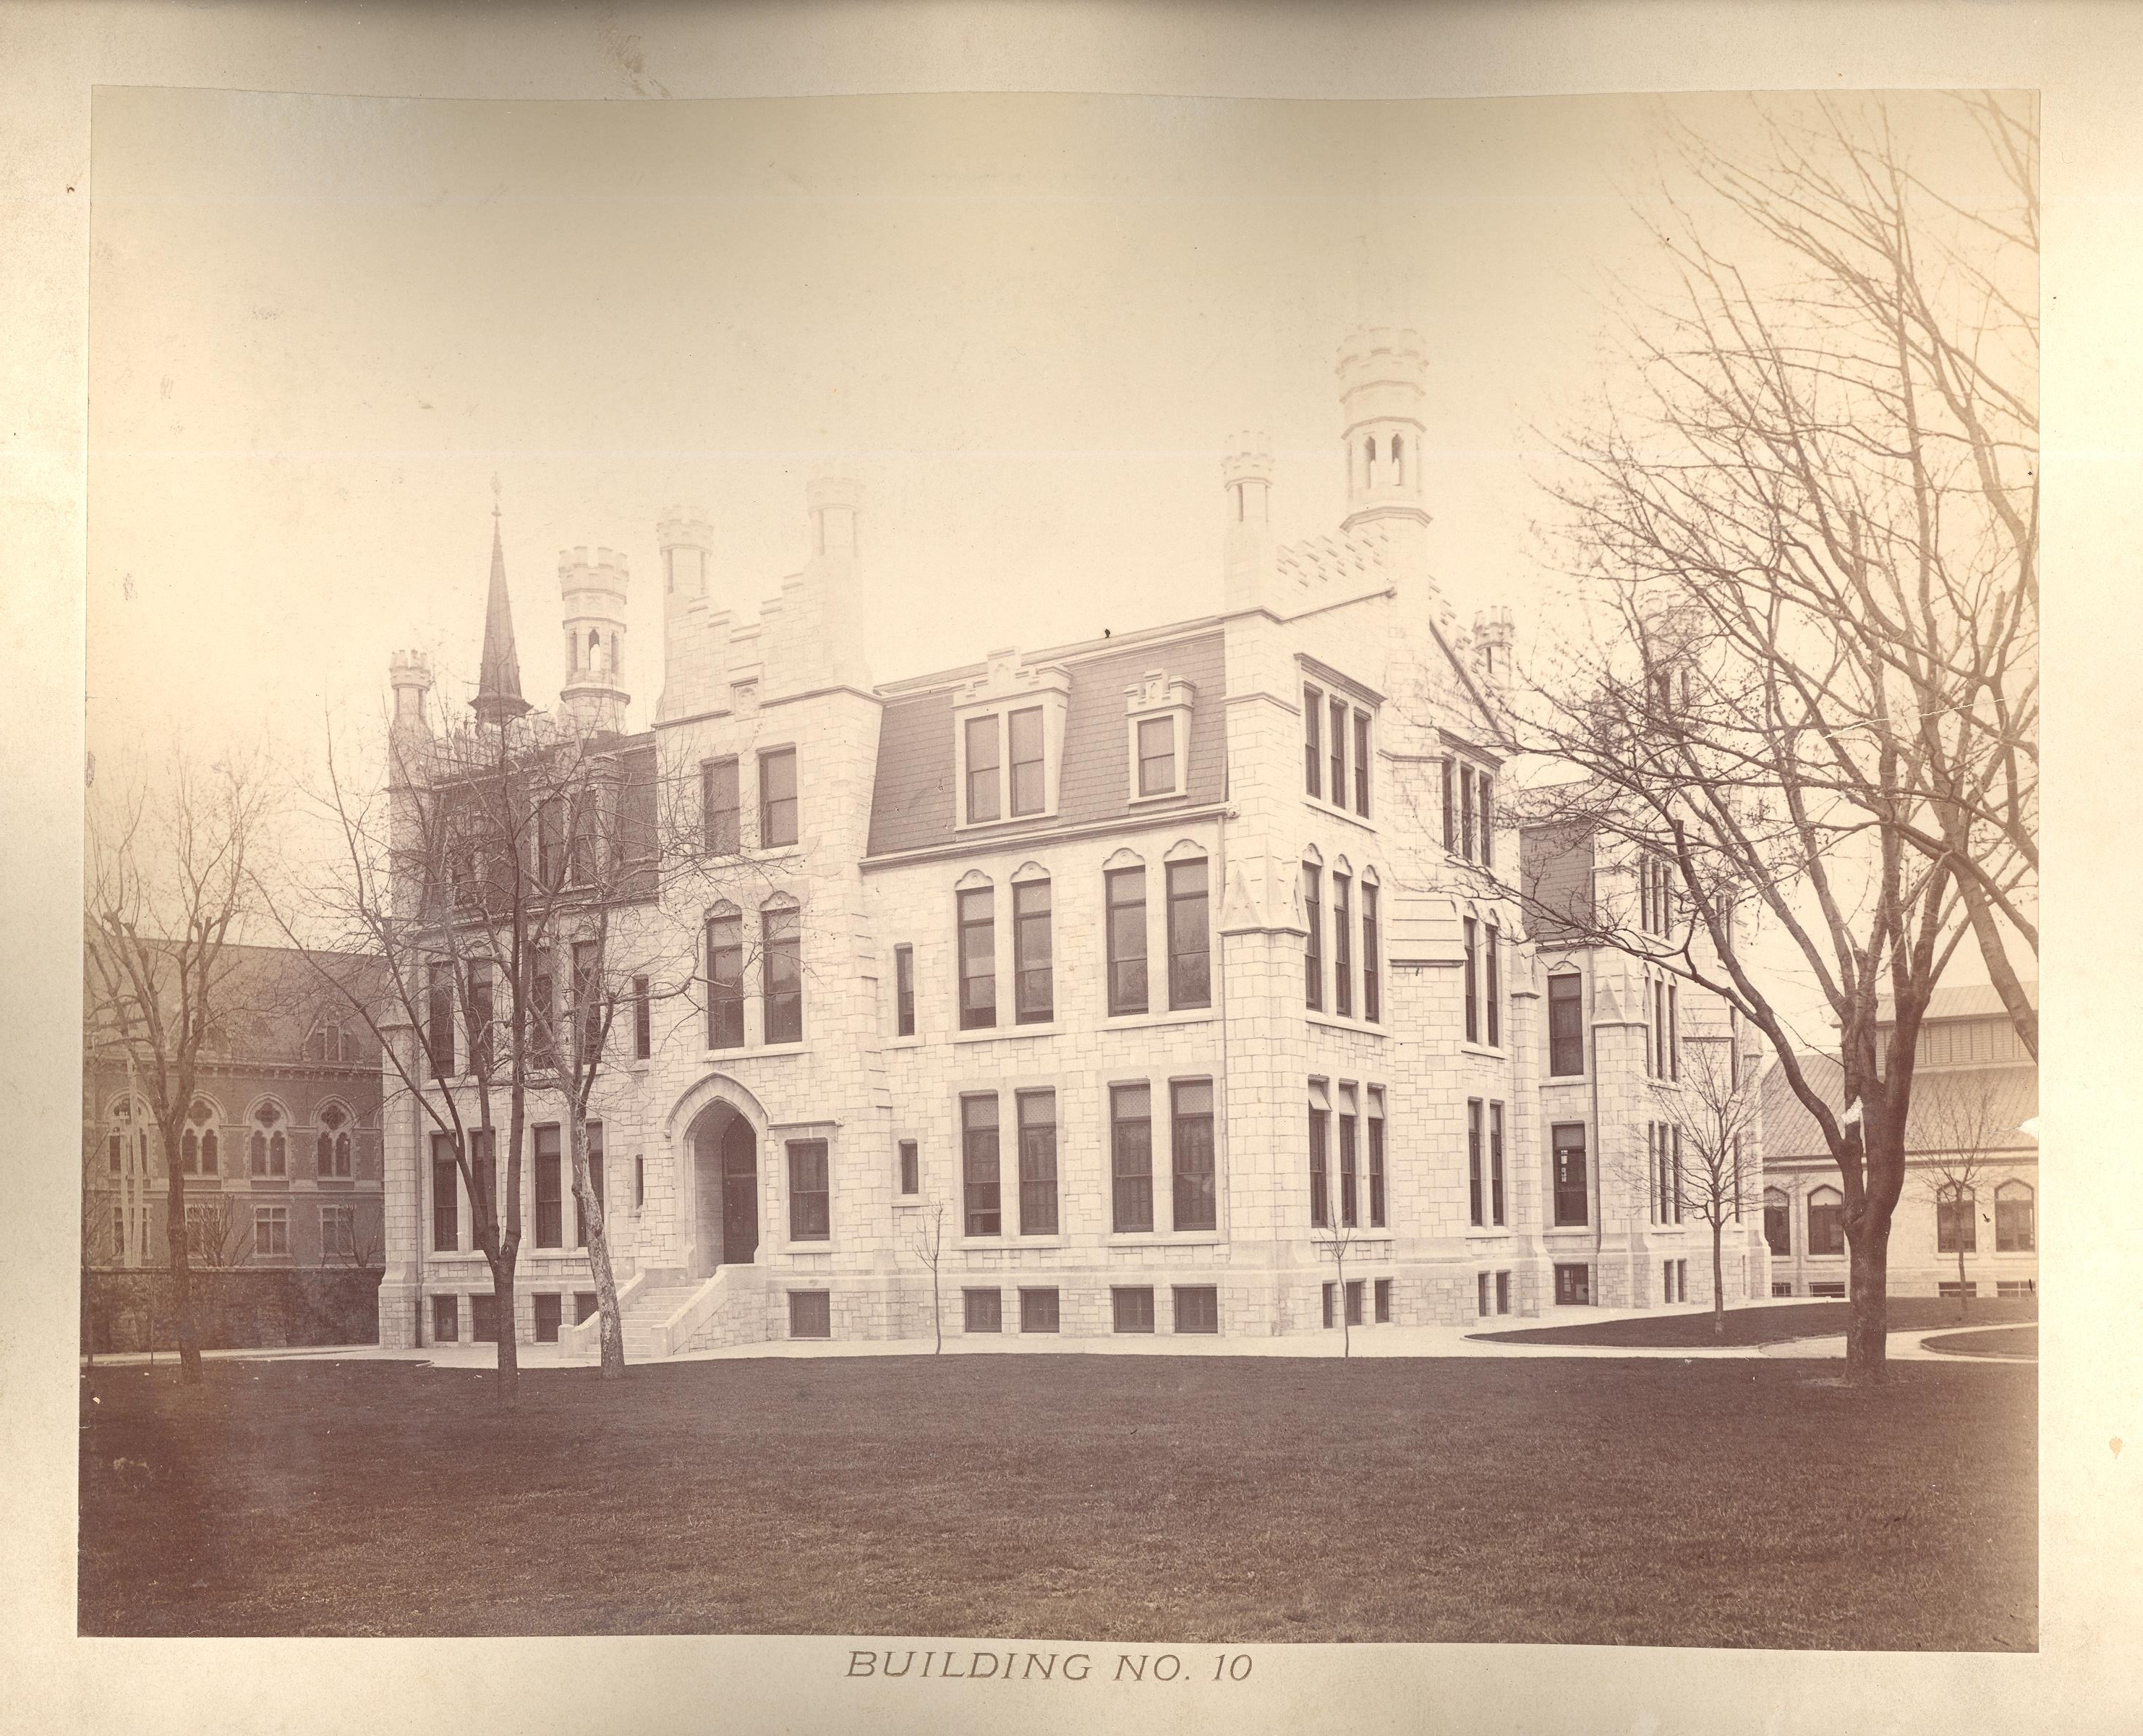 1893 photo of Building No. 10, later known as the Middle School Building.